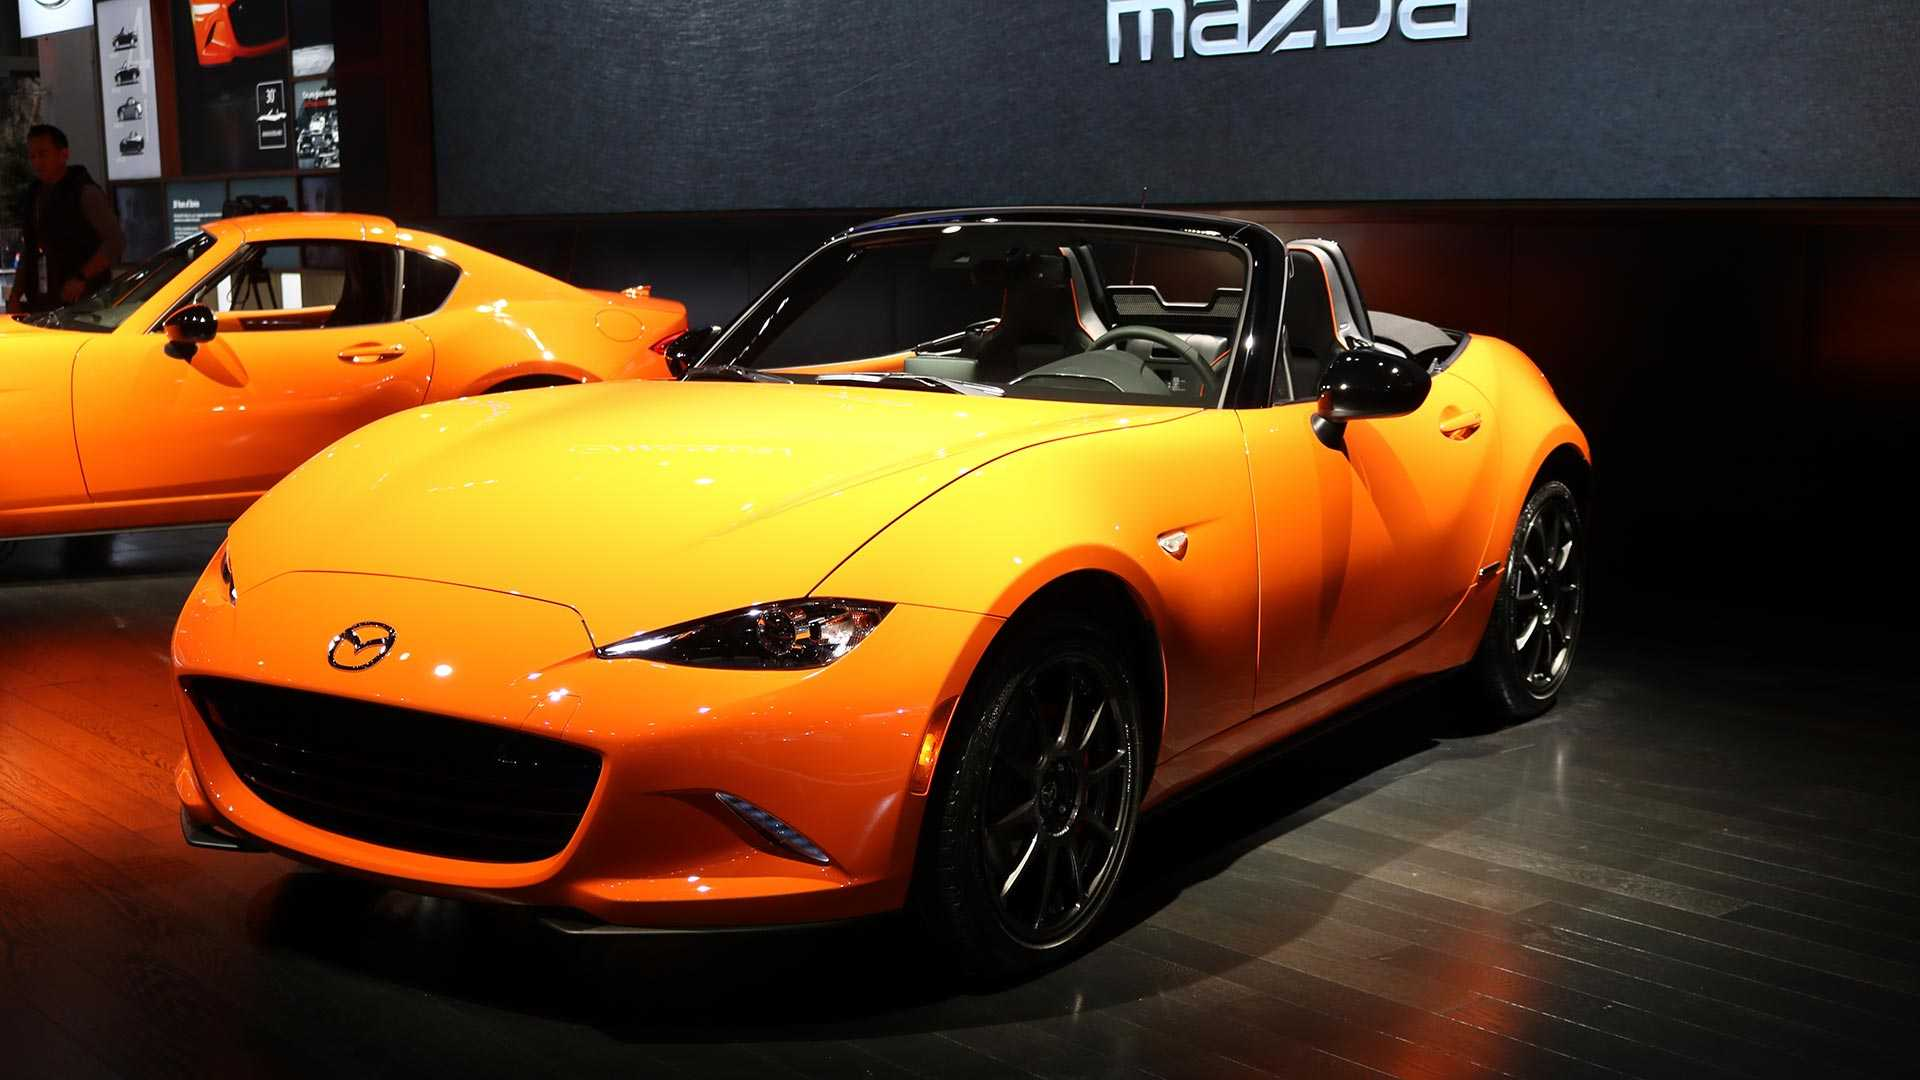 A special series celebrating 30 years of the Mazda MX-5 roadster has debuted at the Chicago Auto Show earlier today